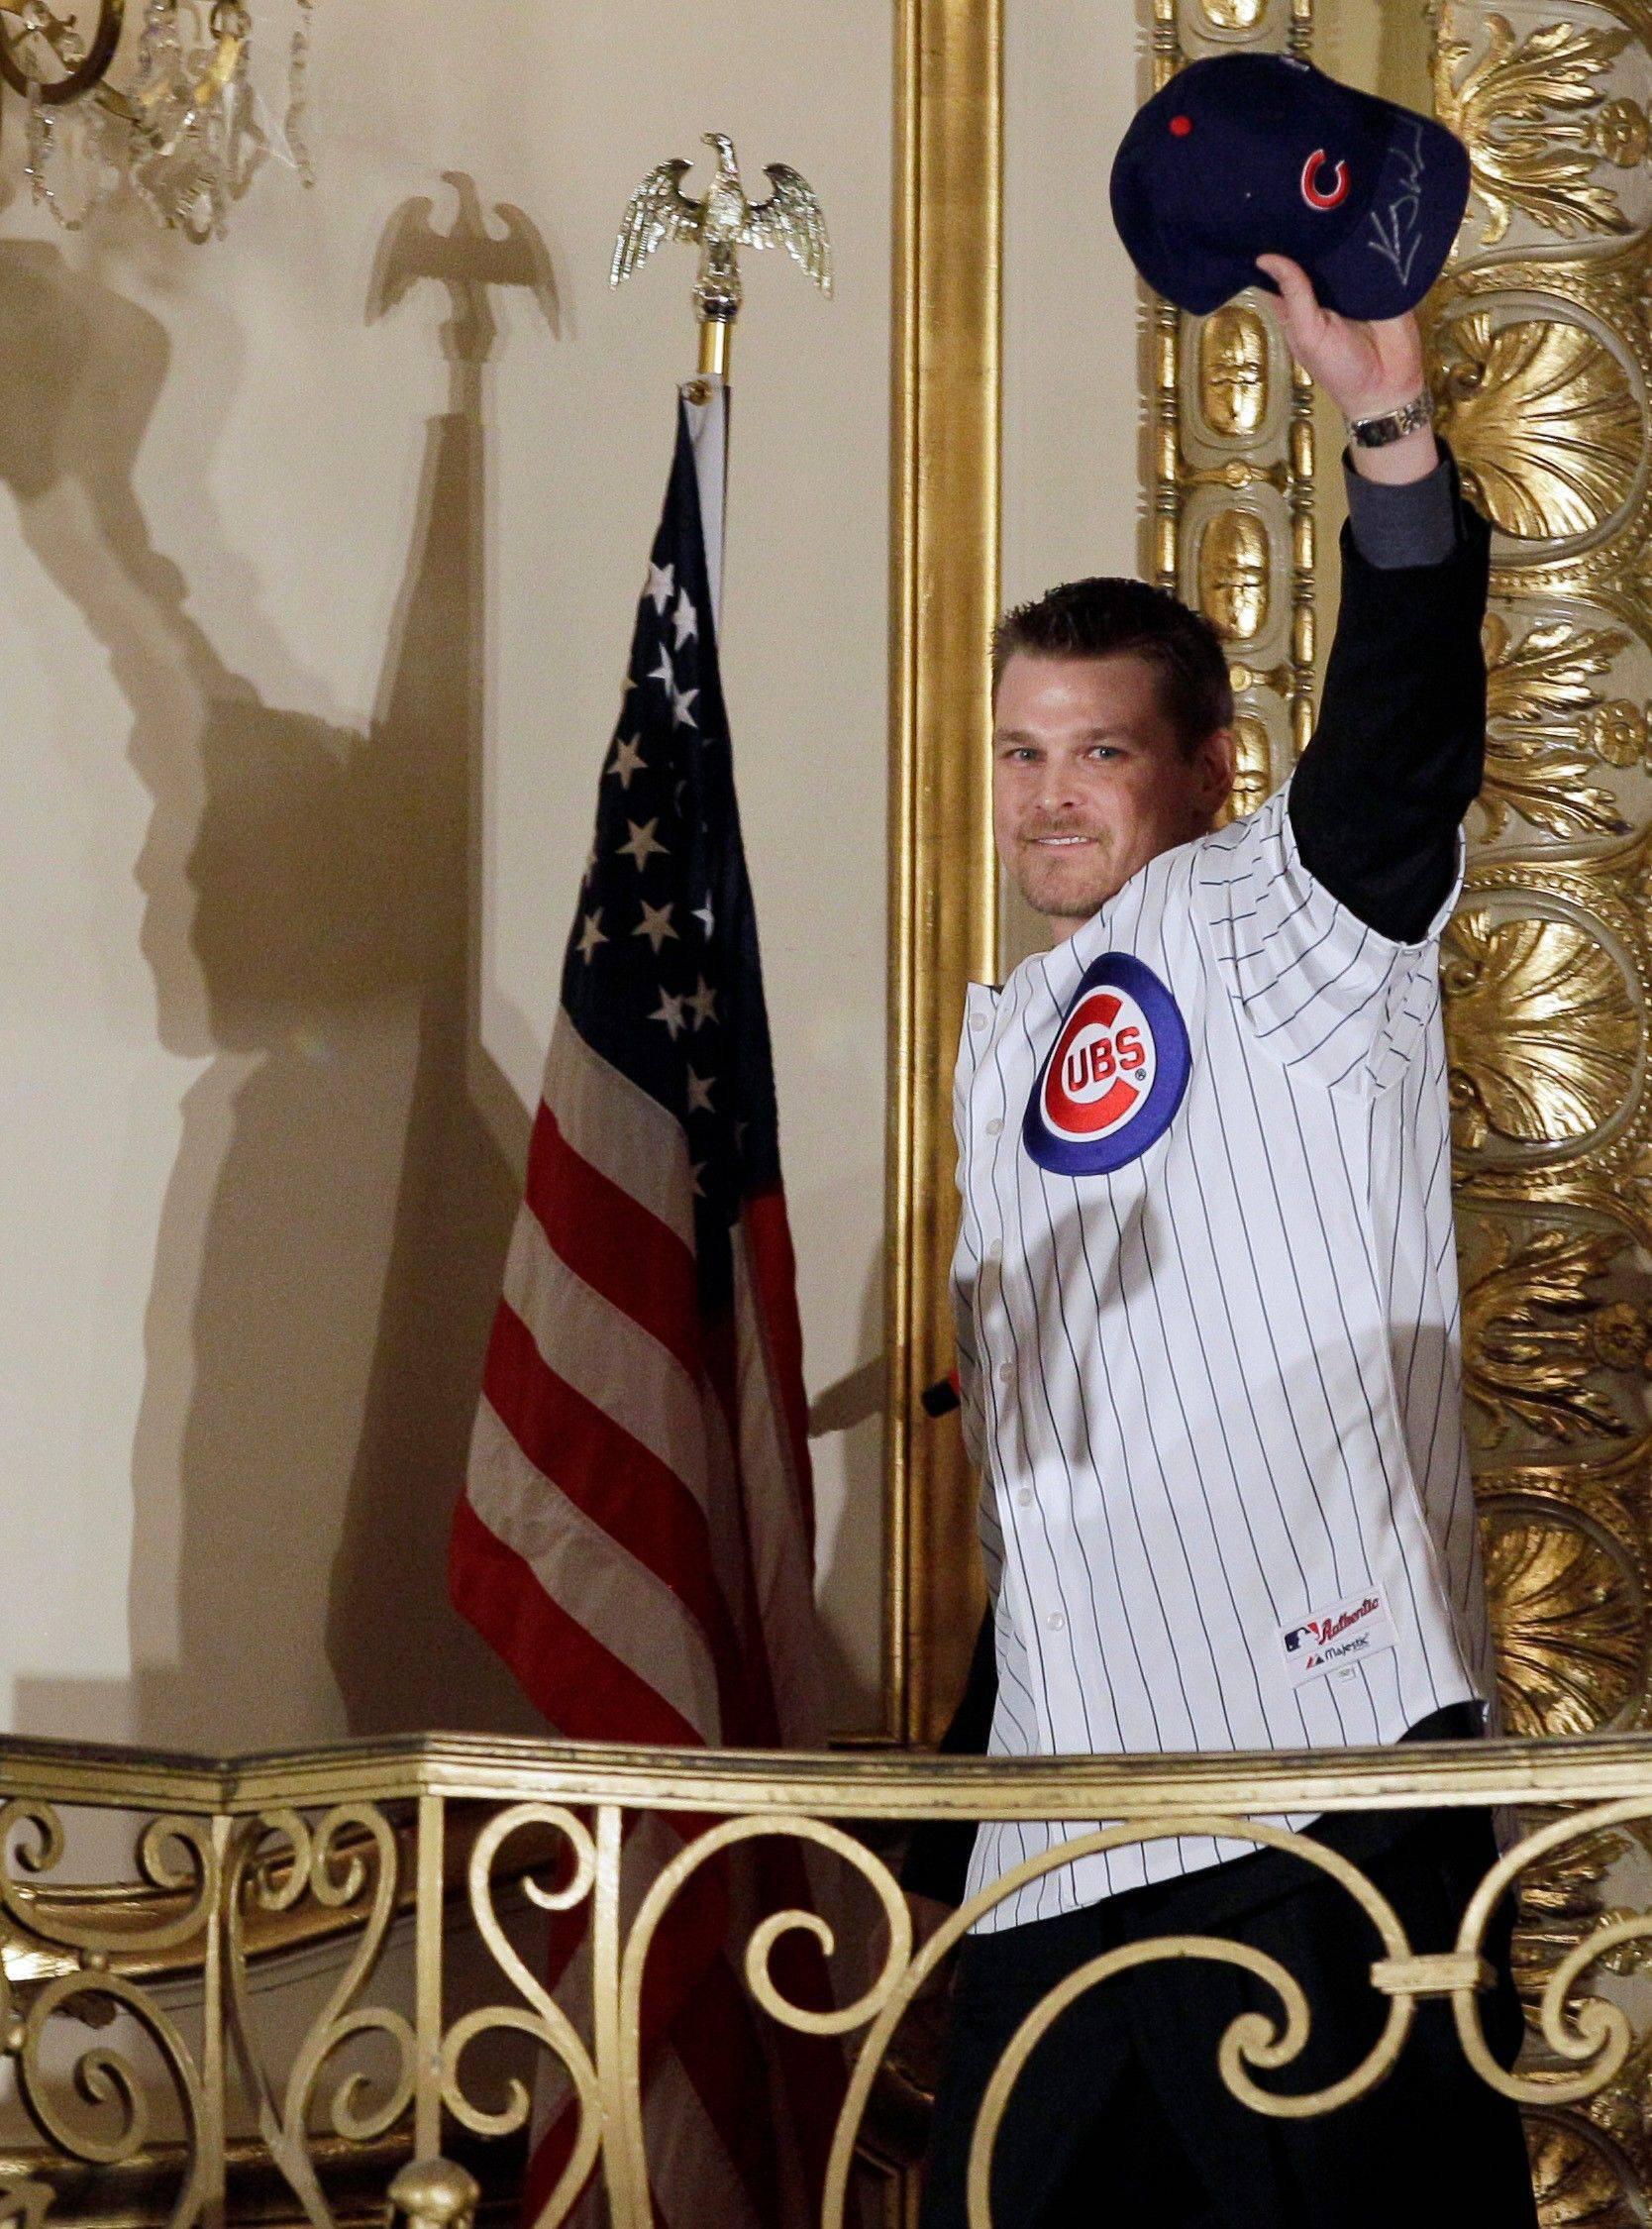 Cubs convention kicks off with Wood signing